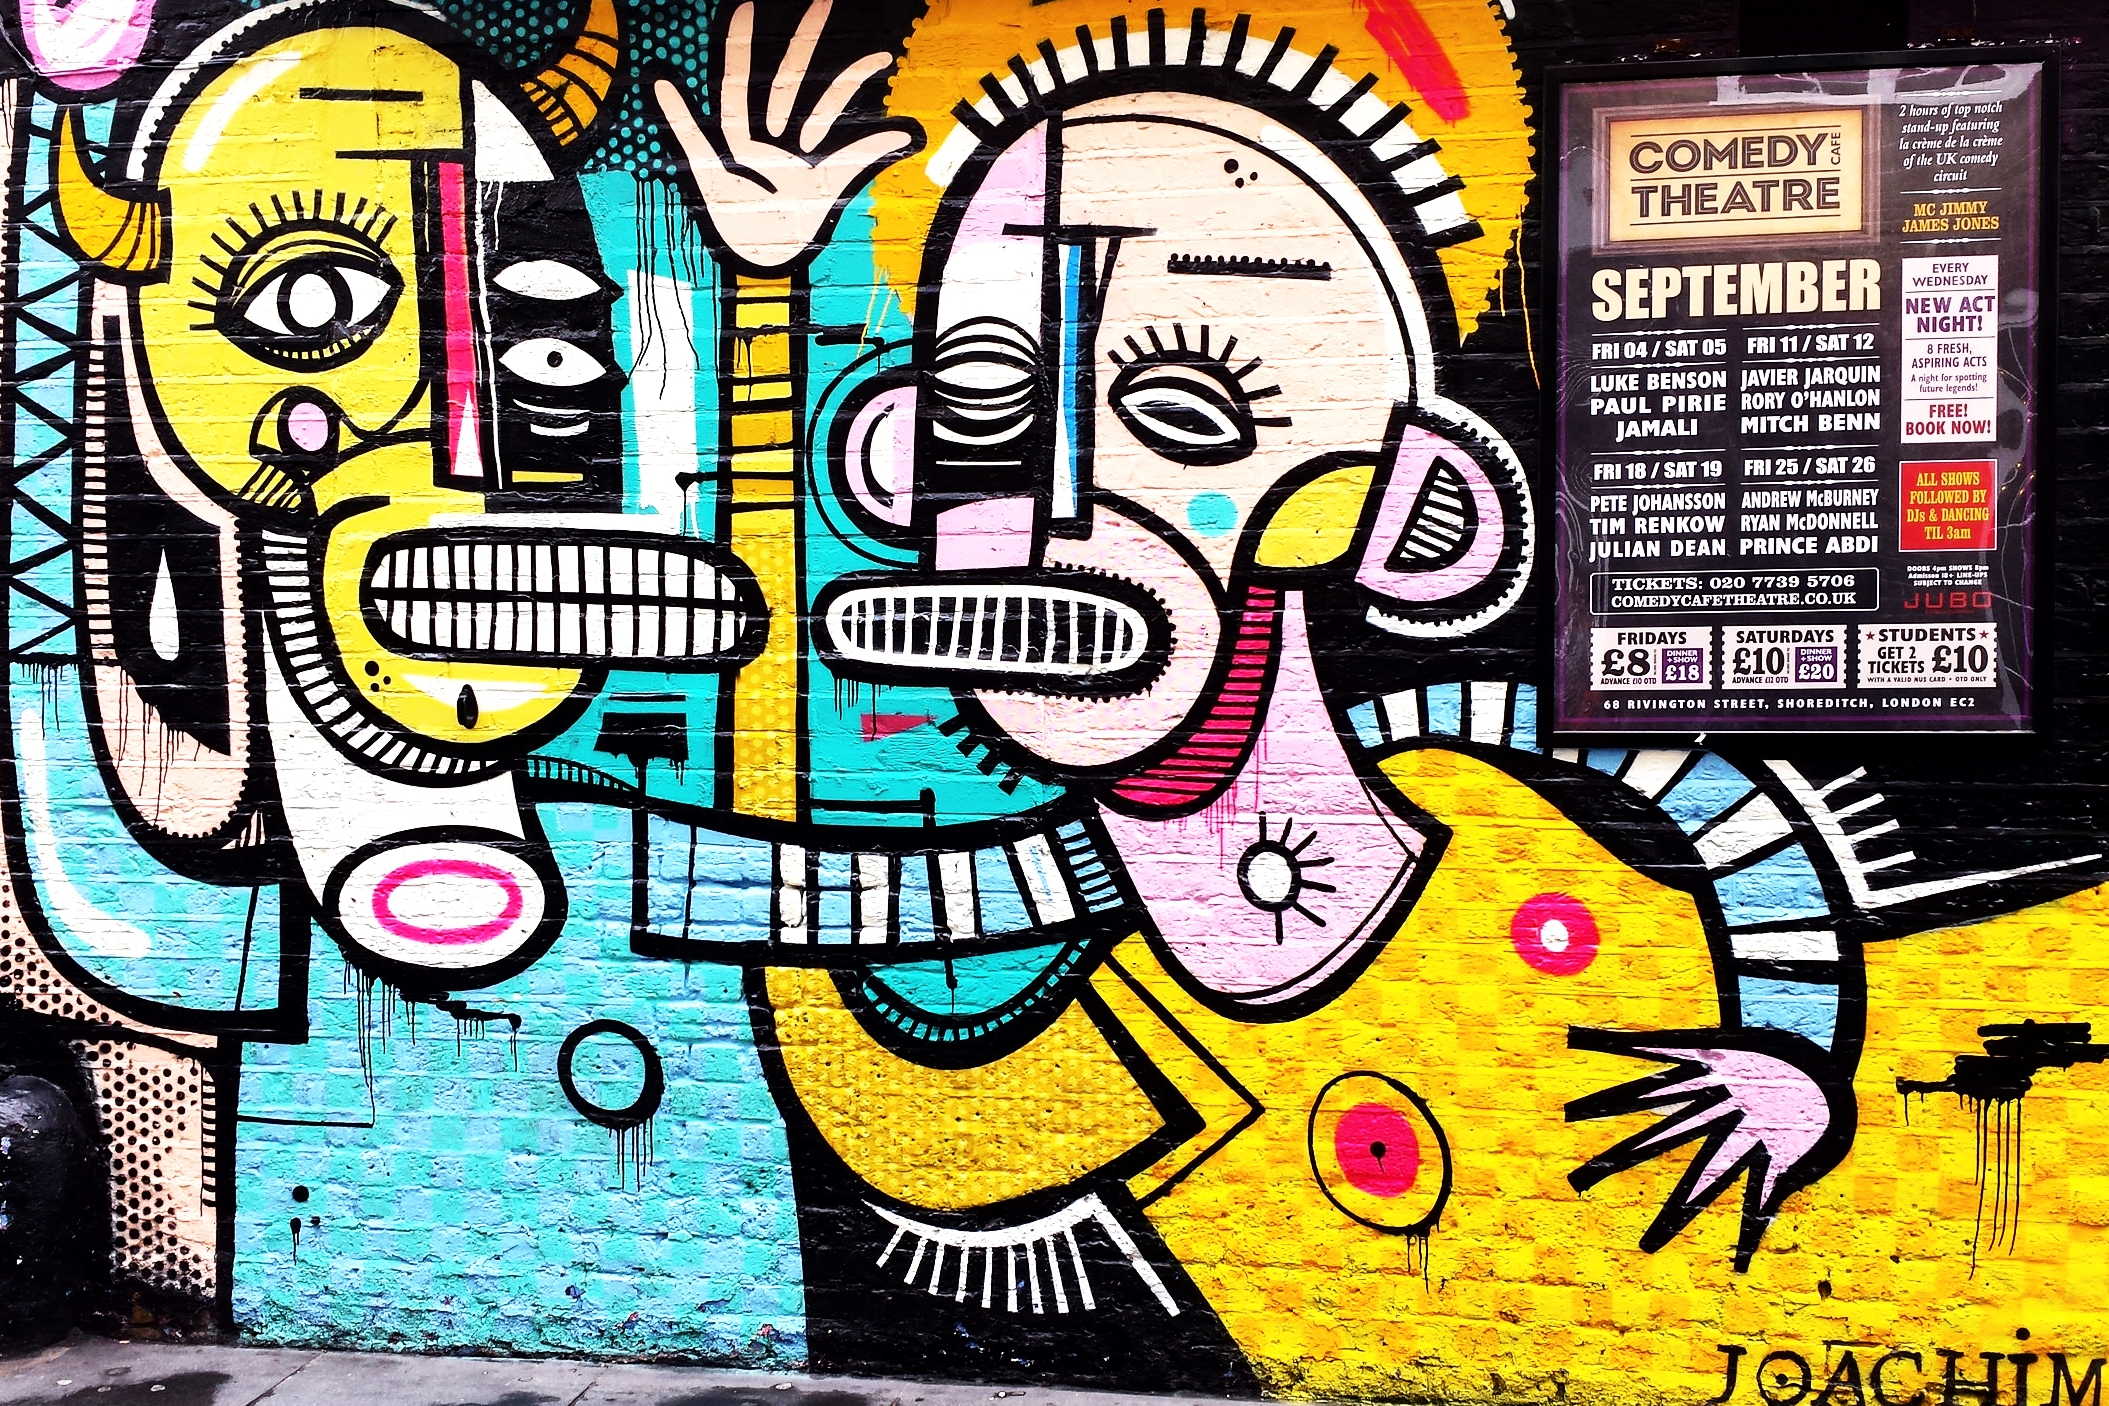 STREET ART - A Connoisseur's Walking Tour of East London